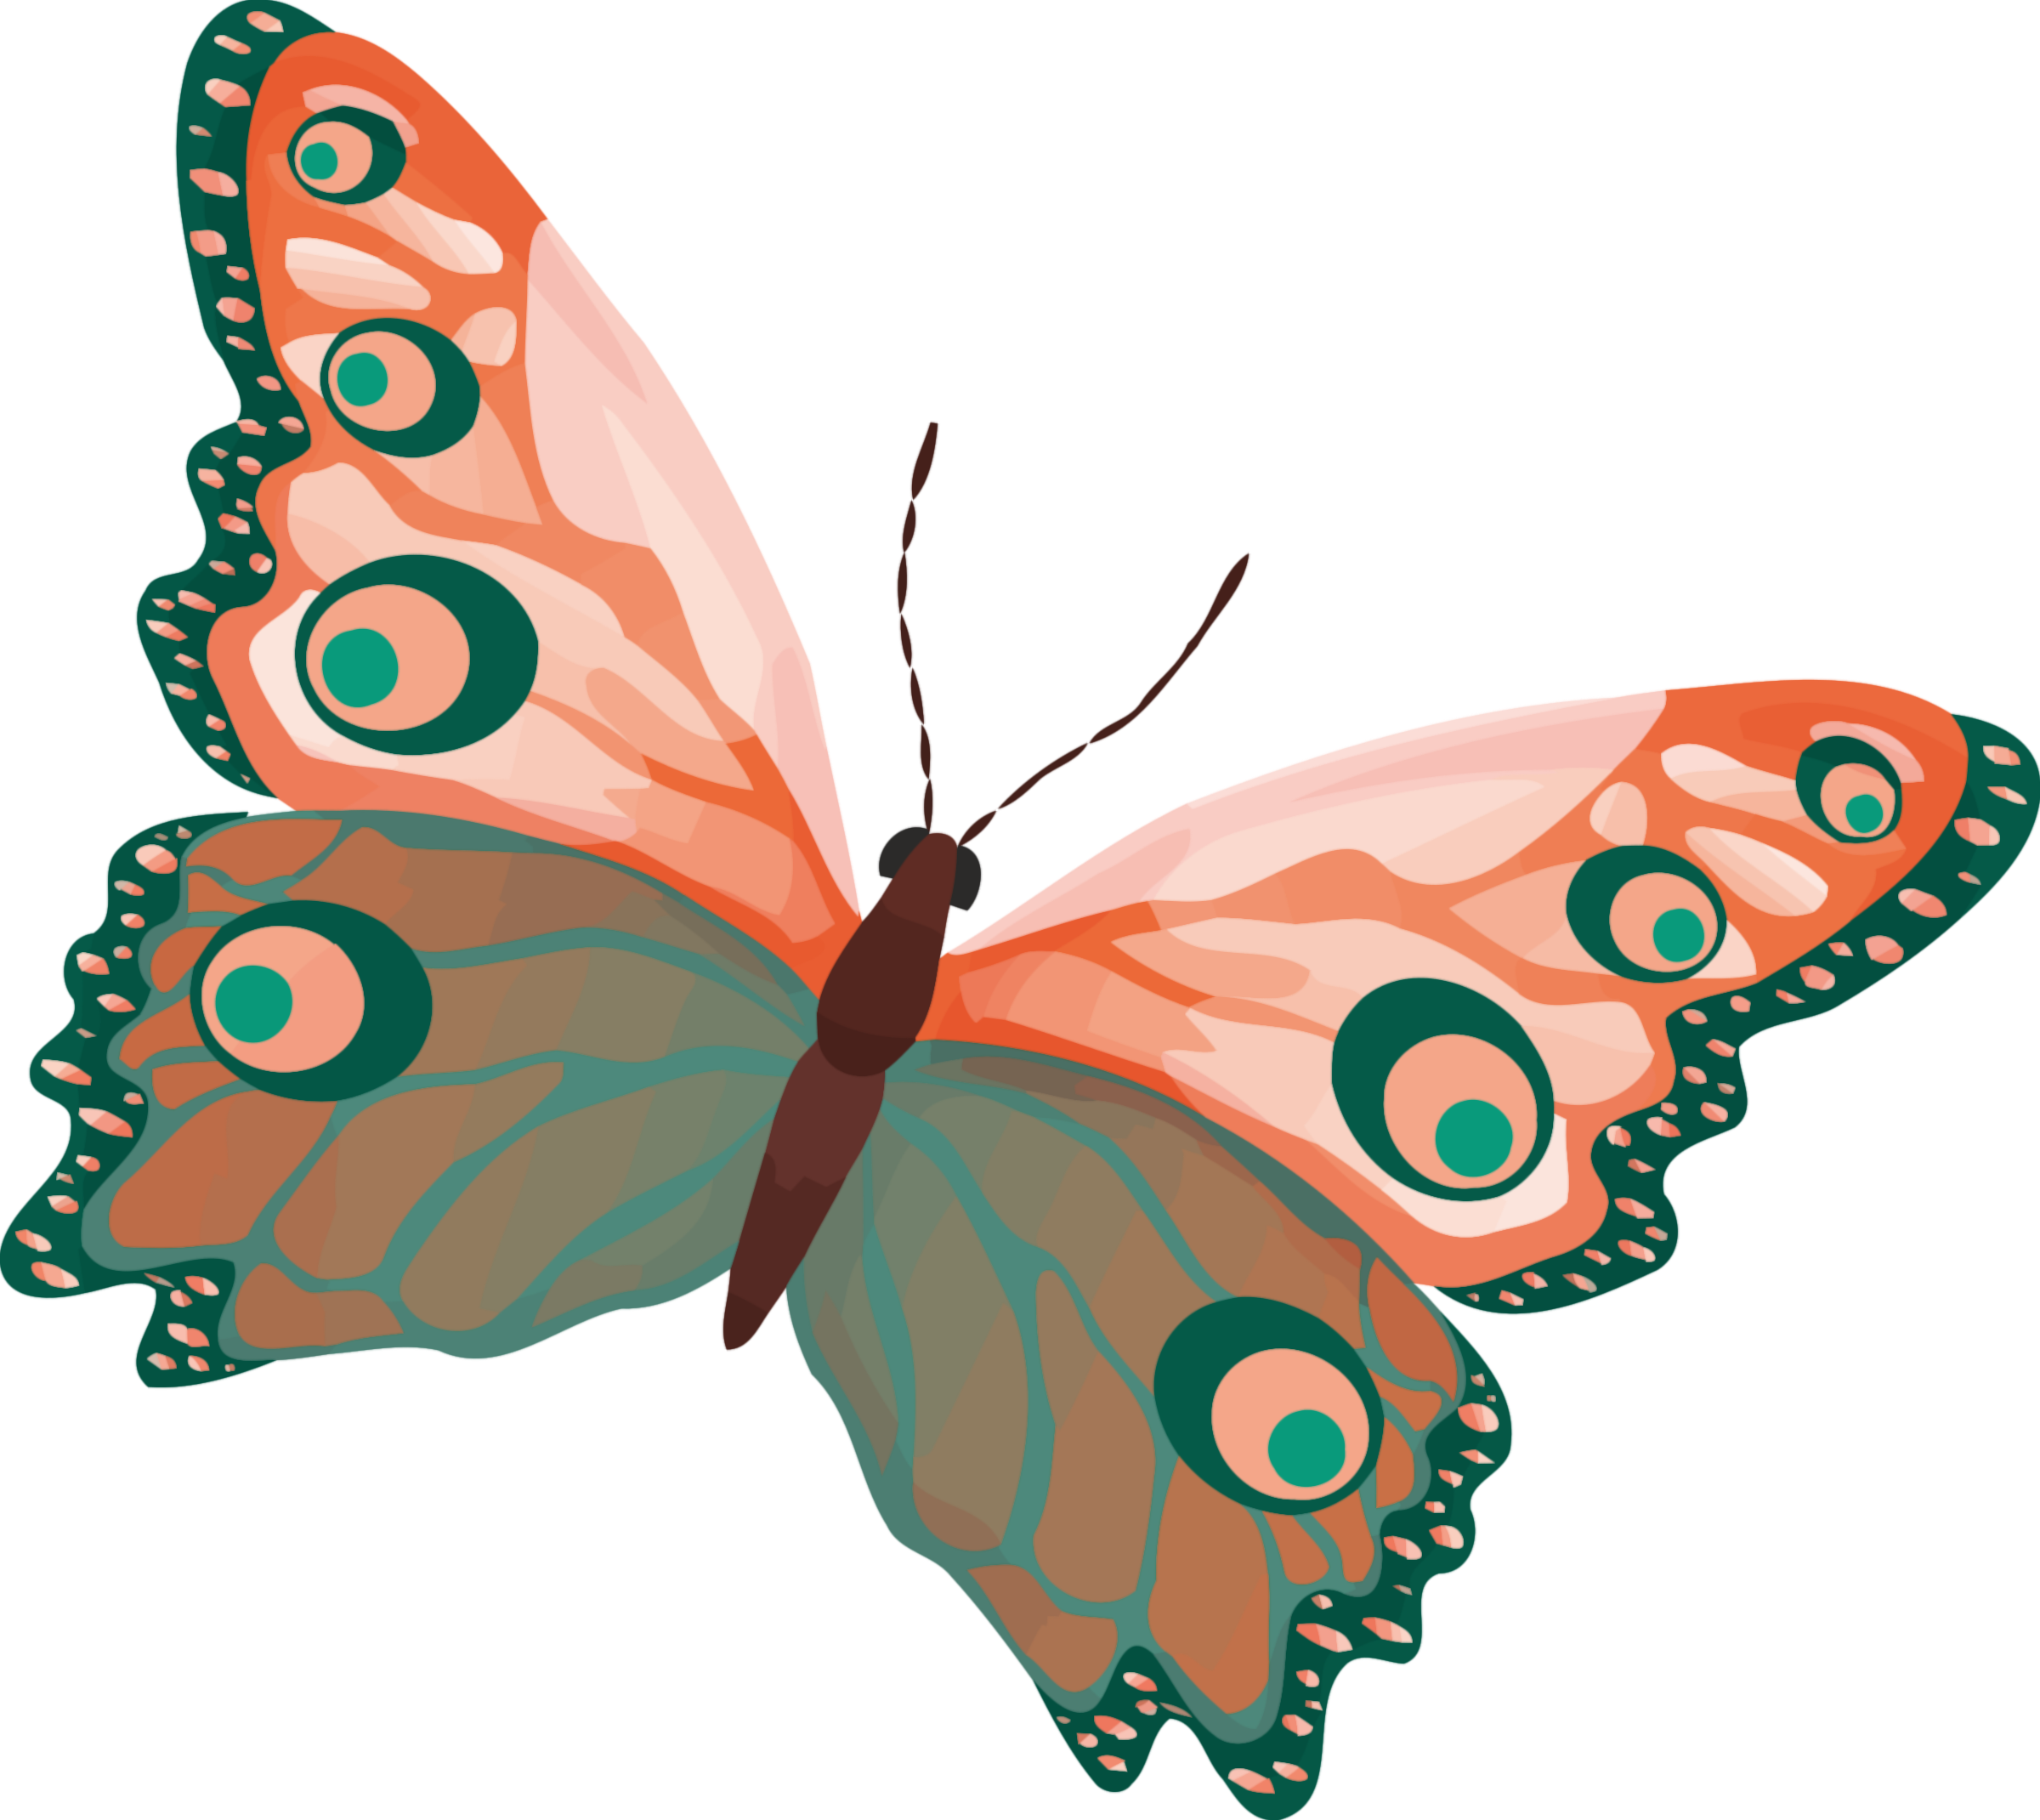 Clipart butterfly printable. Impressive pictures to colour